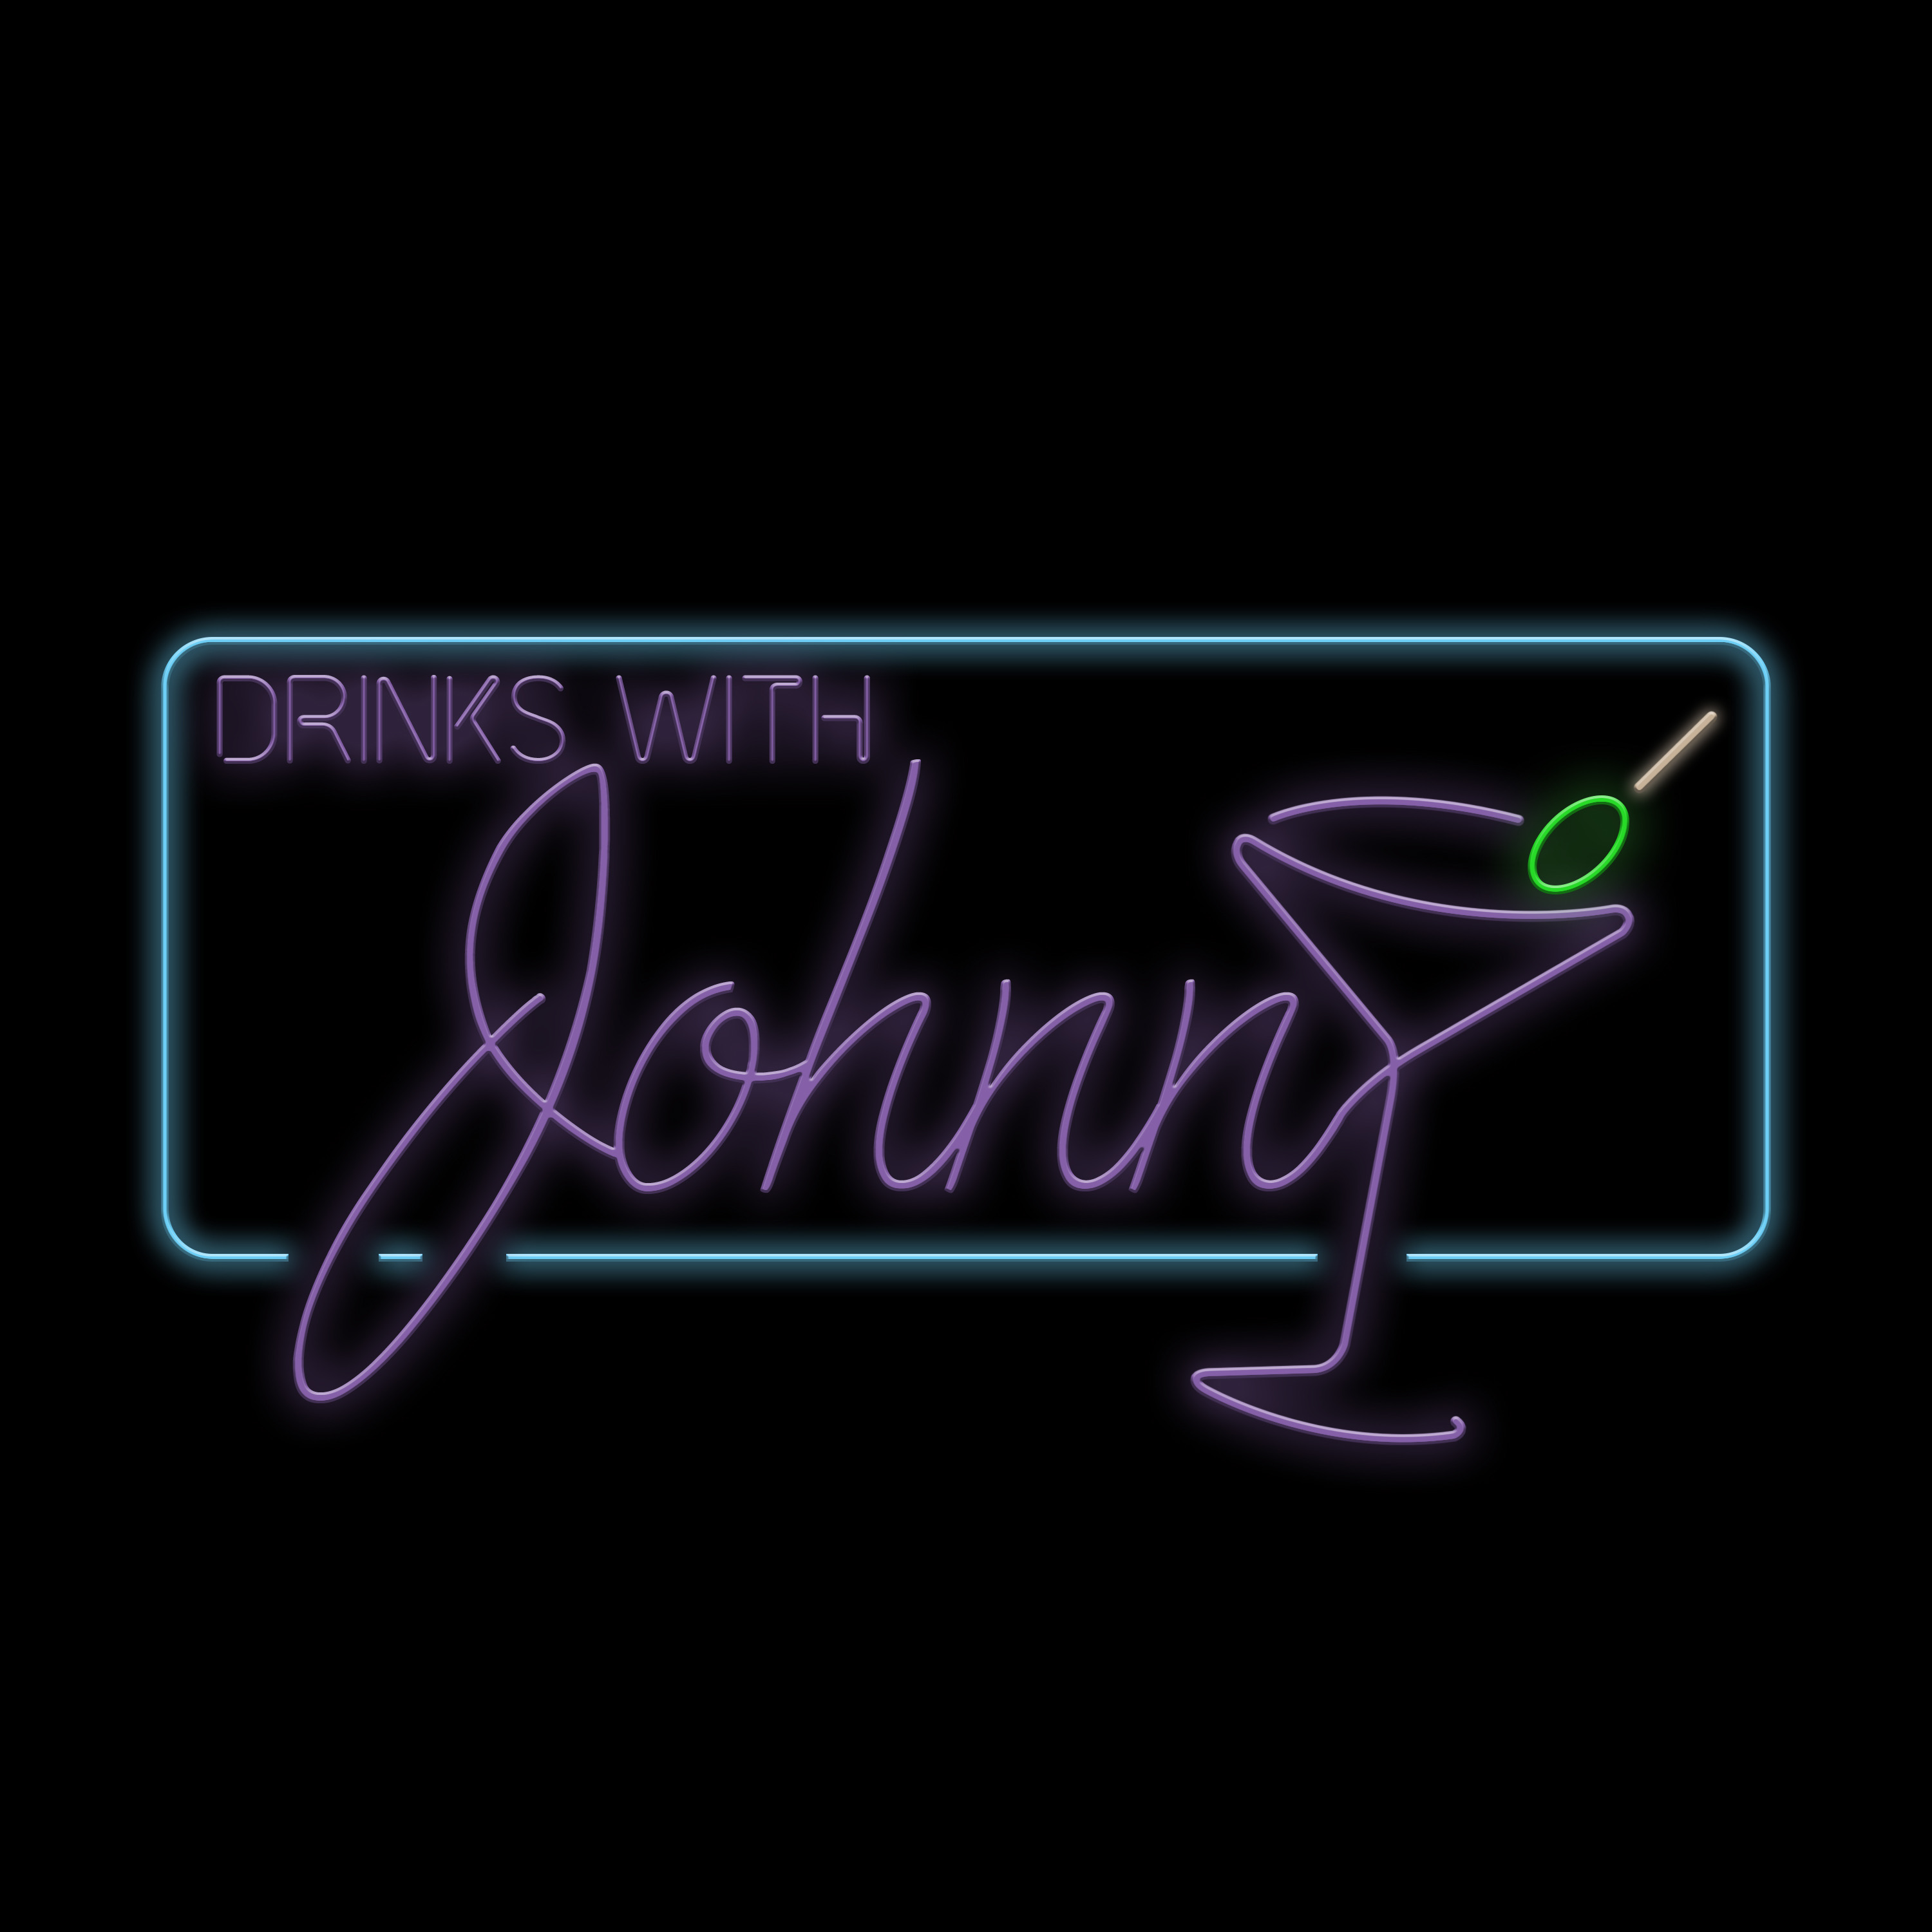 Drinks with Johnny Episode 1: featuring The Dirty Heads